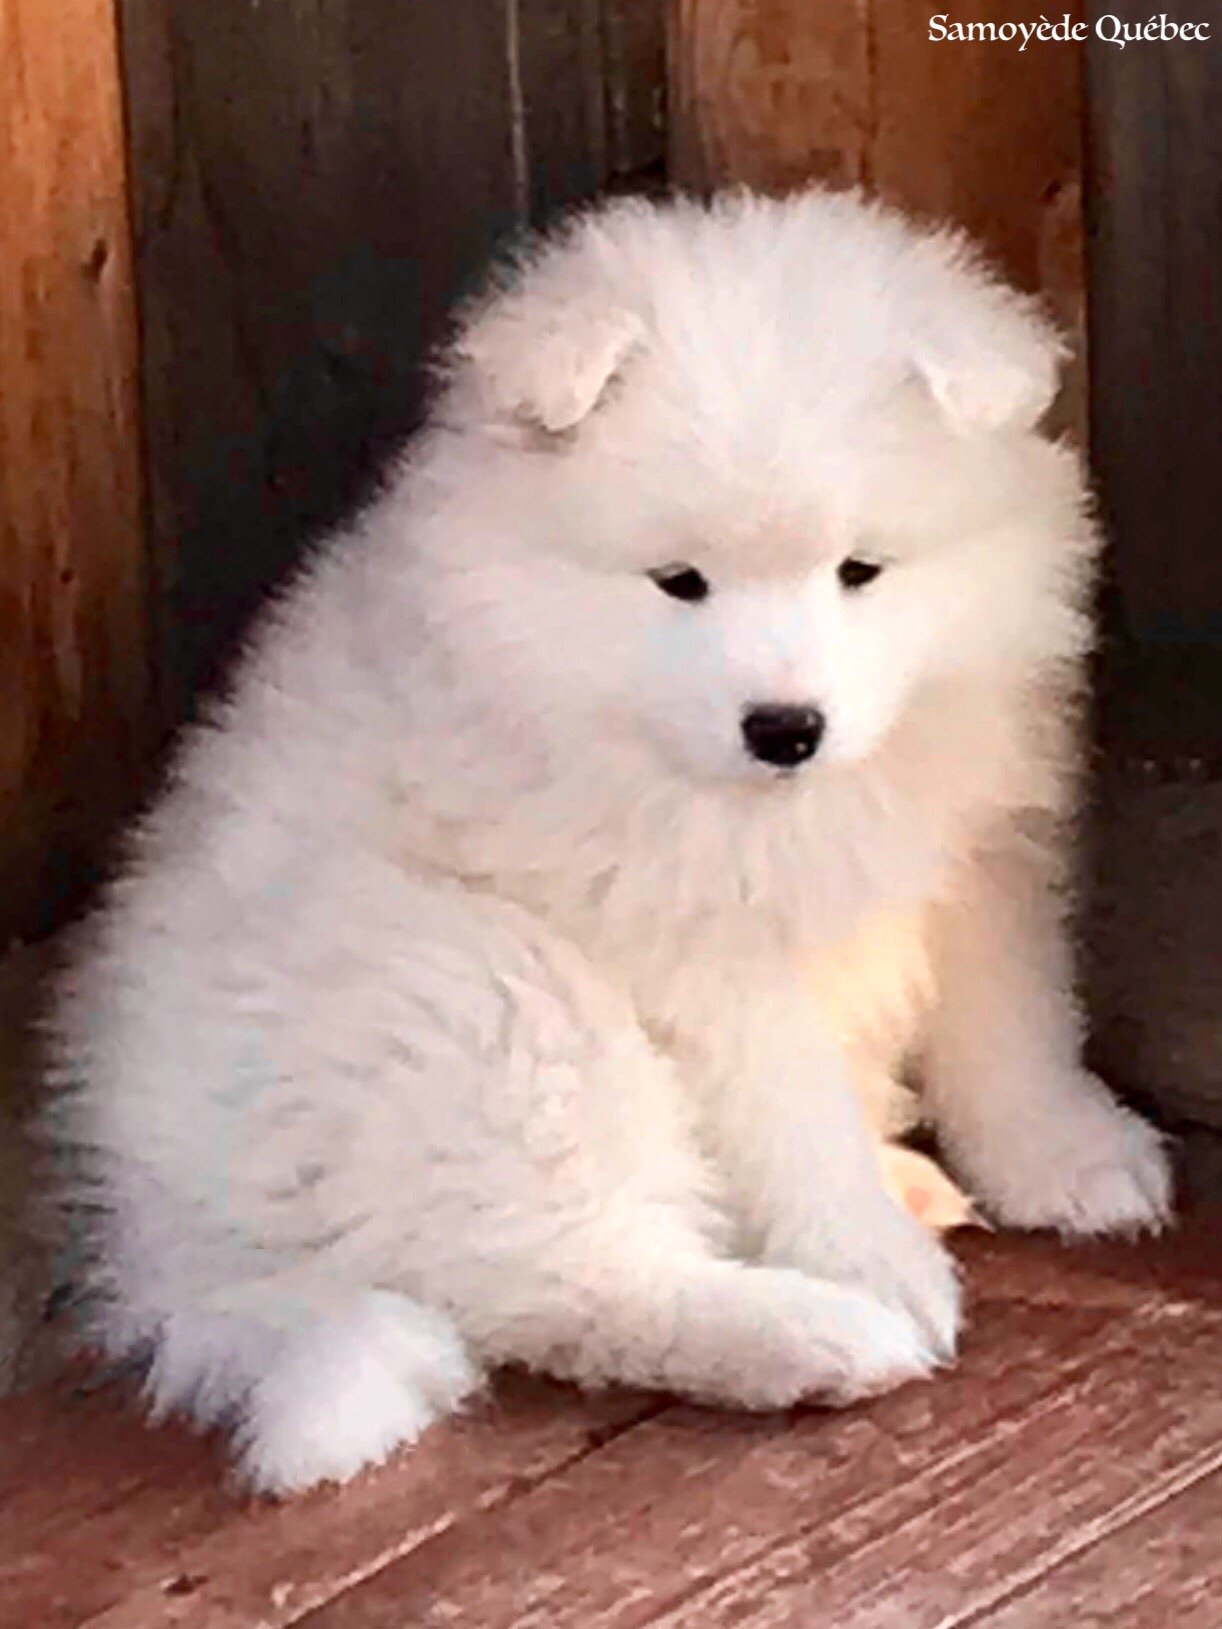 Samoyed Quebec - Samoyed dog breeder